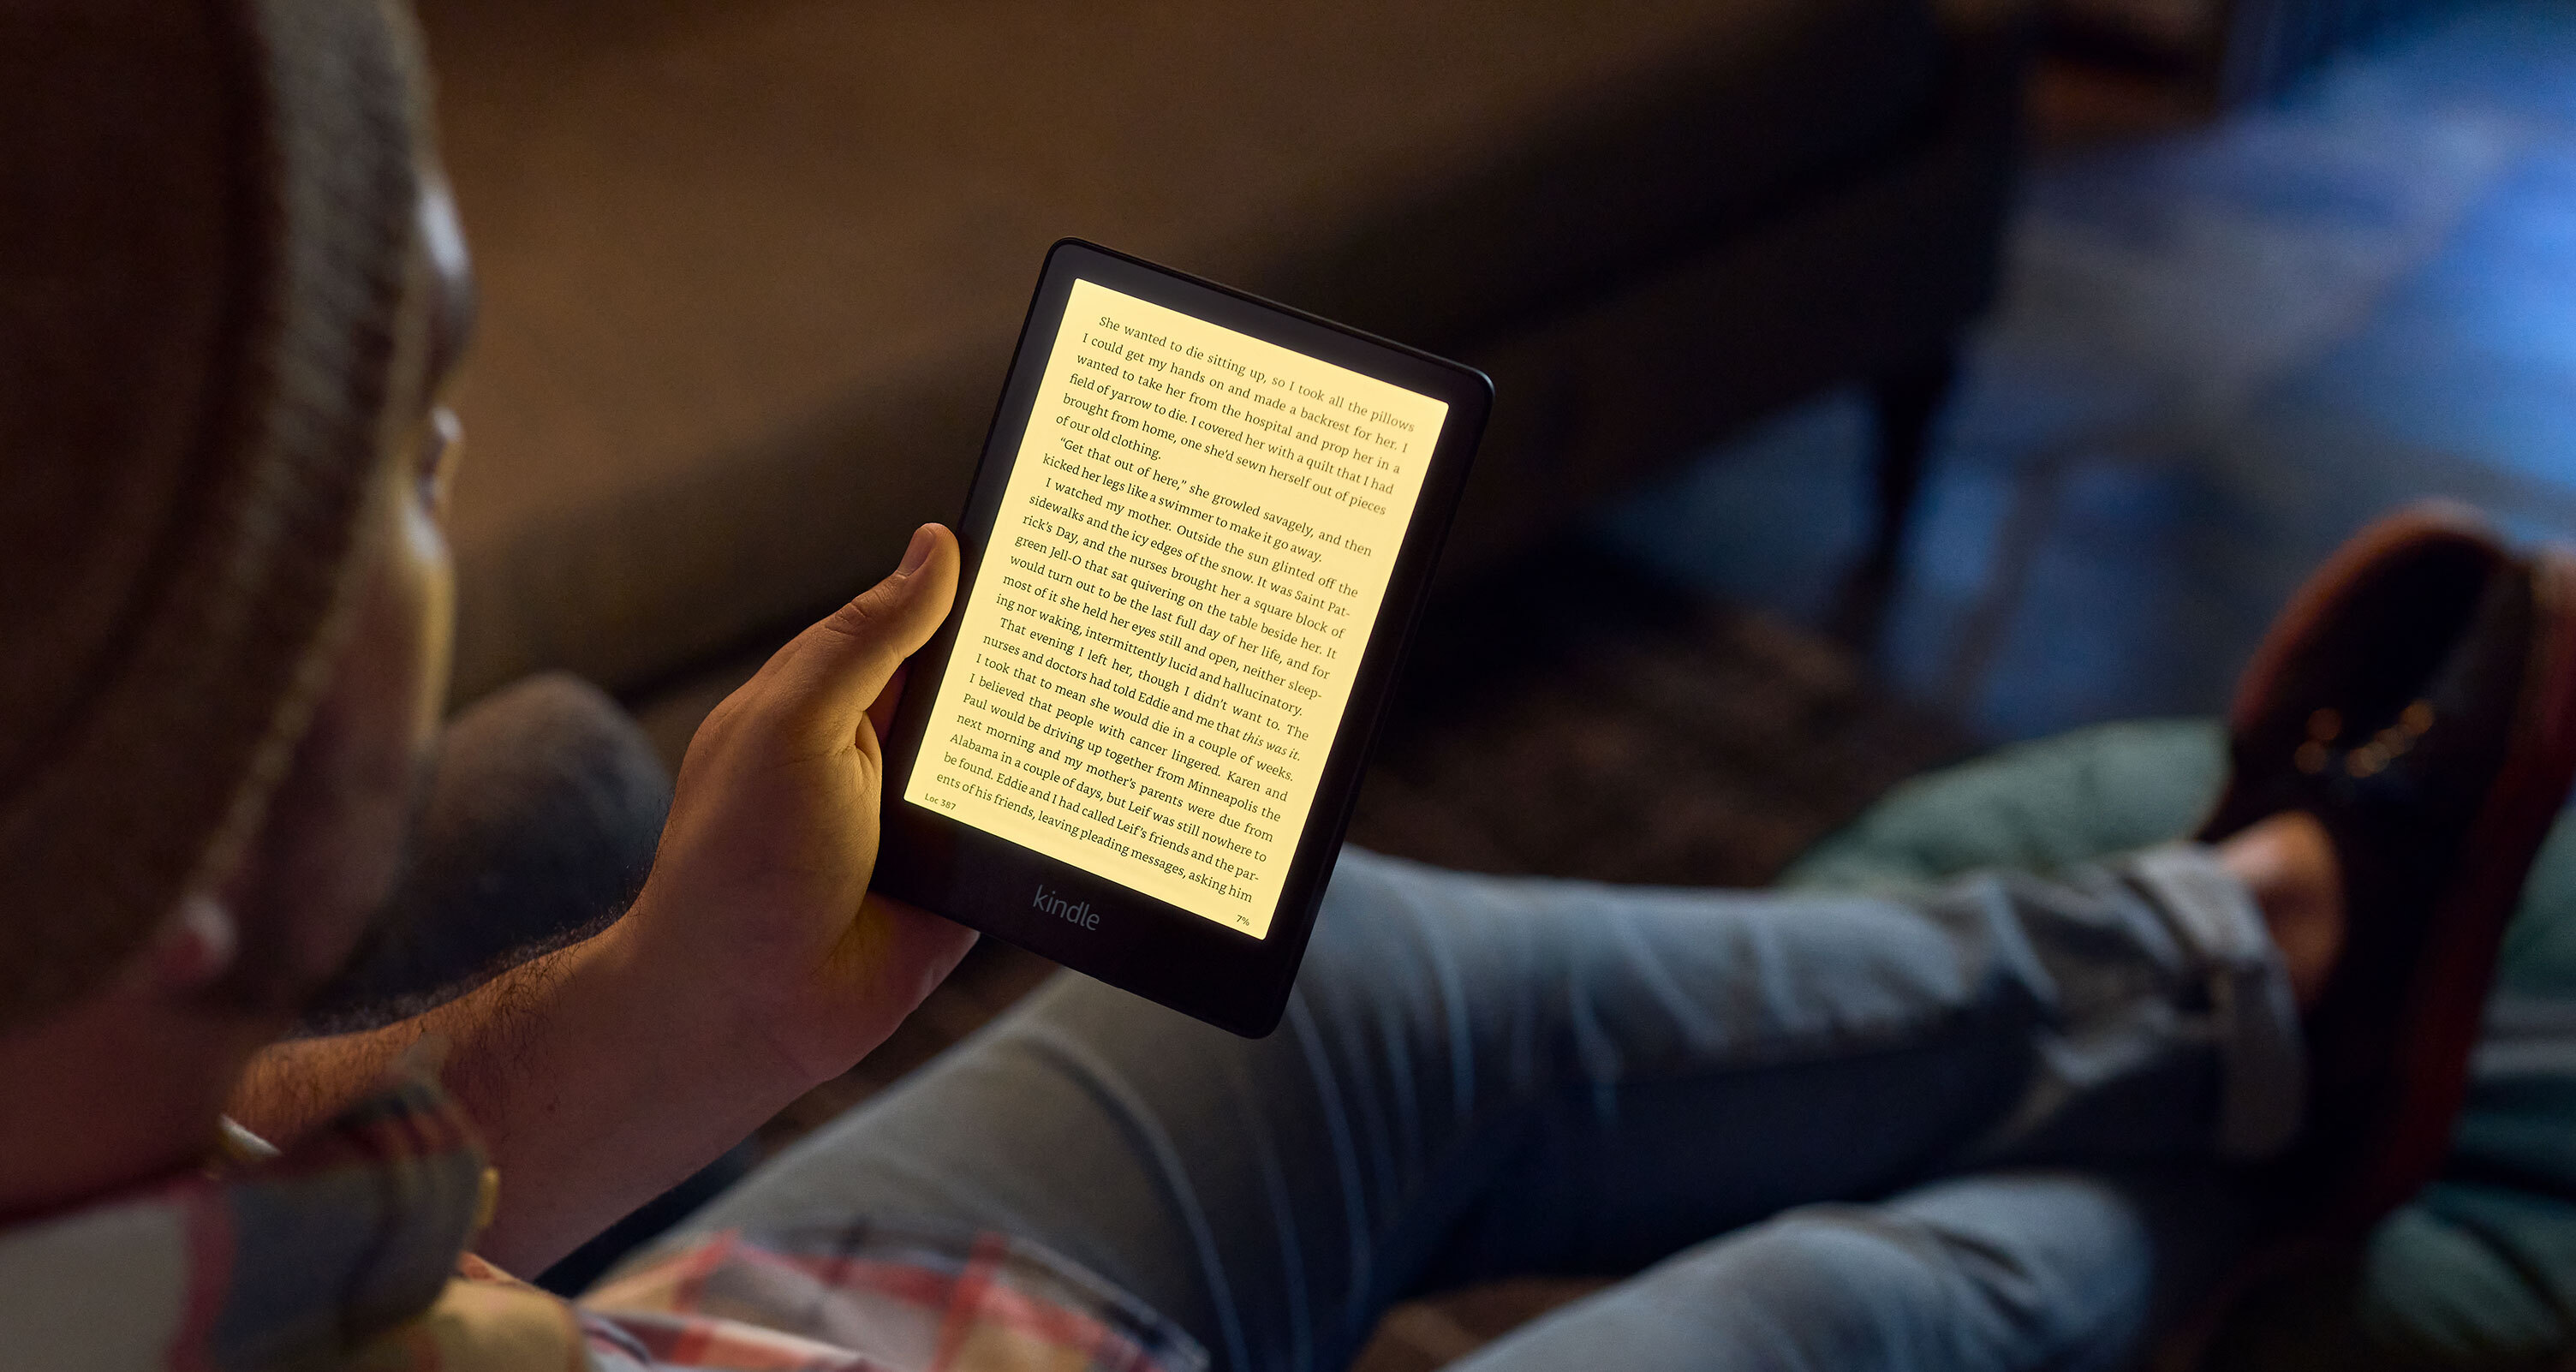 A seated person reading text on a fifth-generation Kindle Paperwhite.